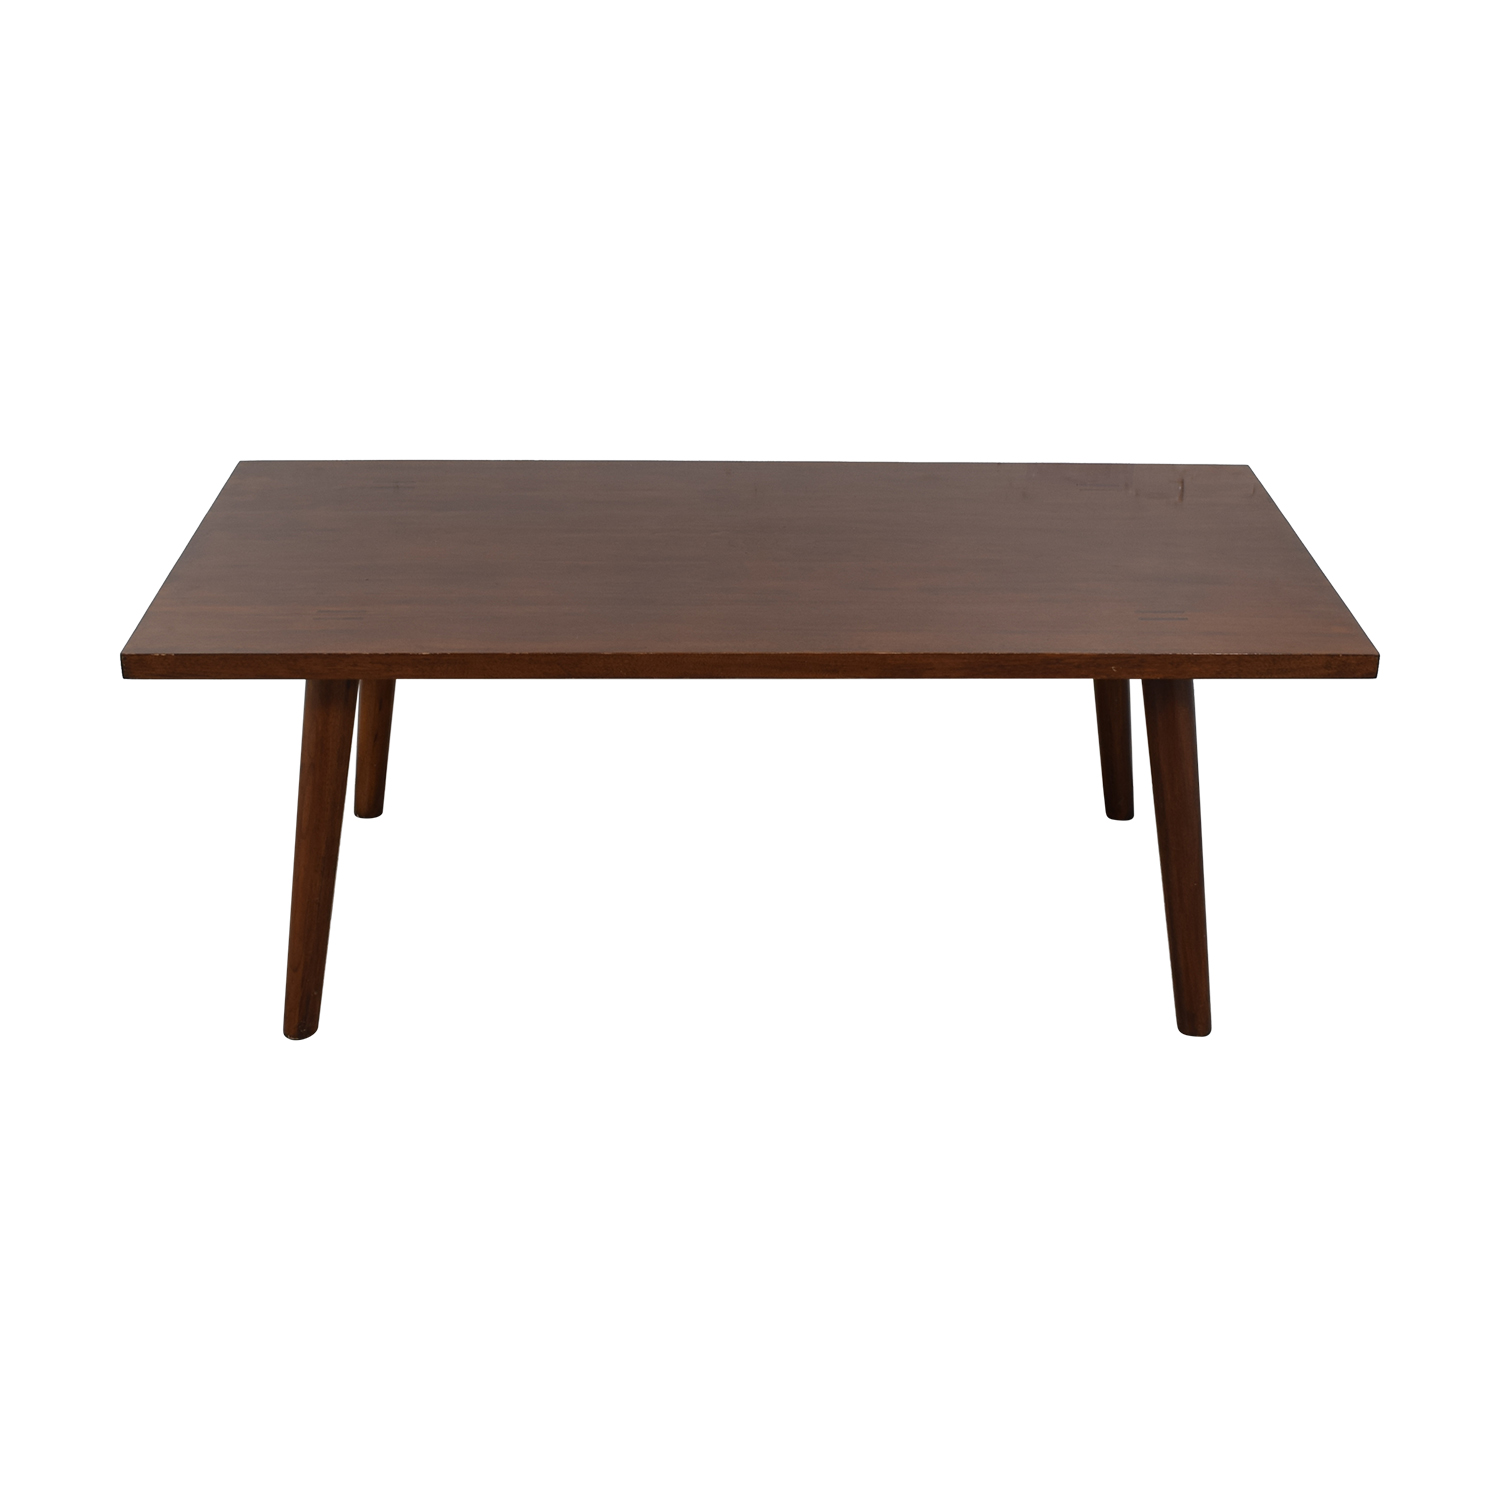 Room & Board Extendable Dining Table Room & Board